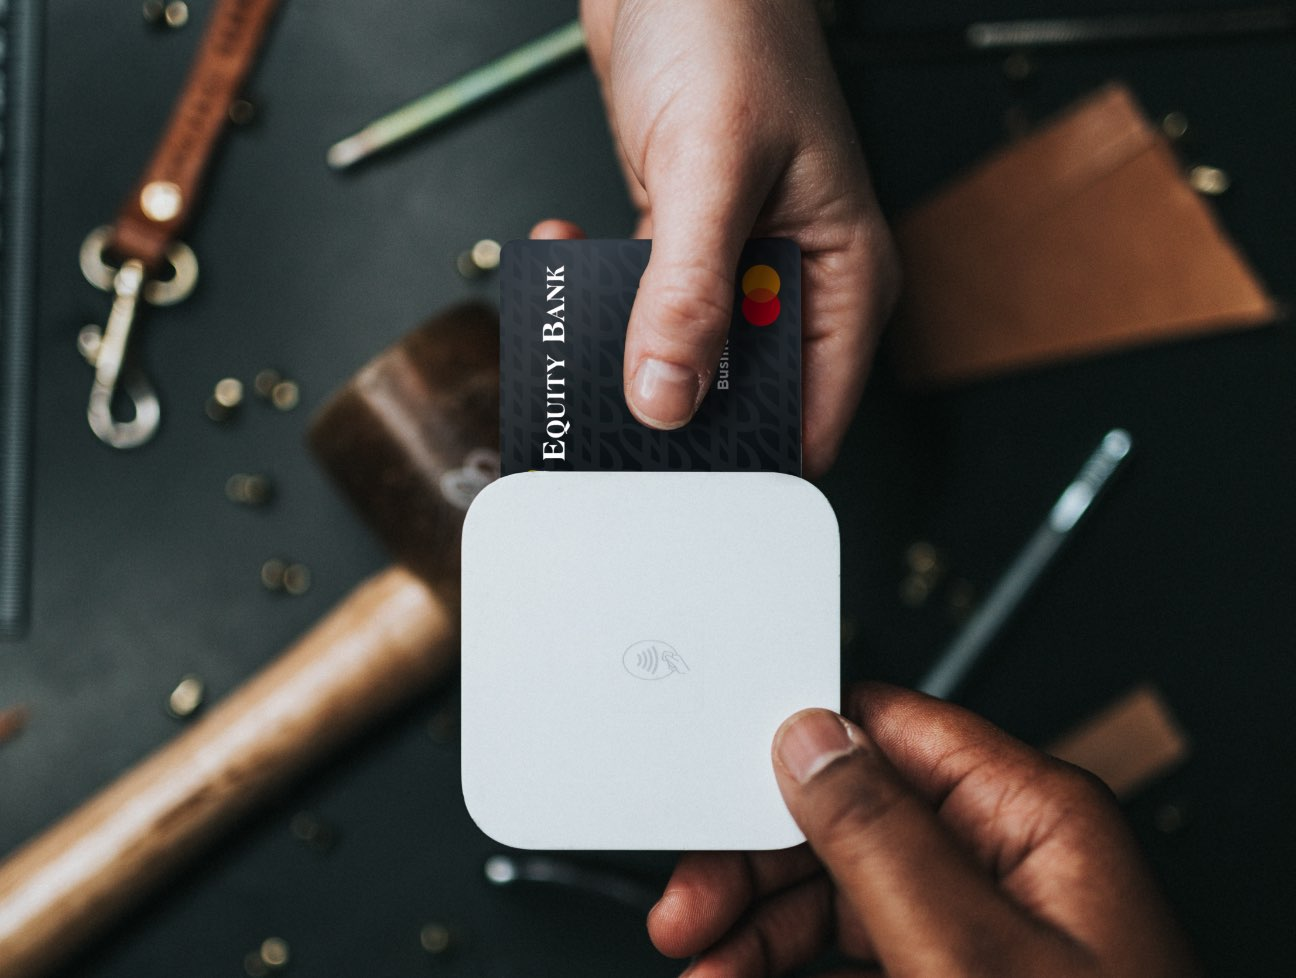 Equity credit card with hand inserting into payment Square